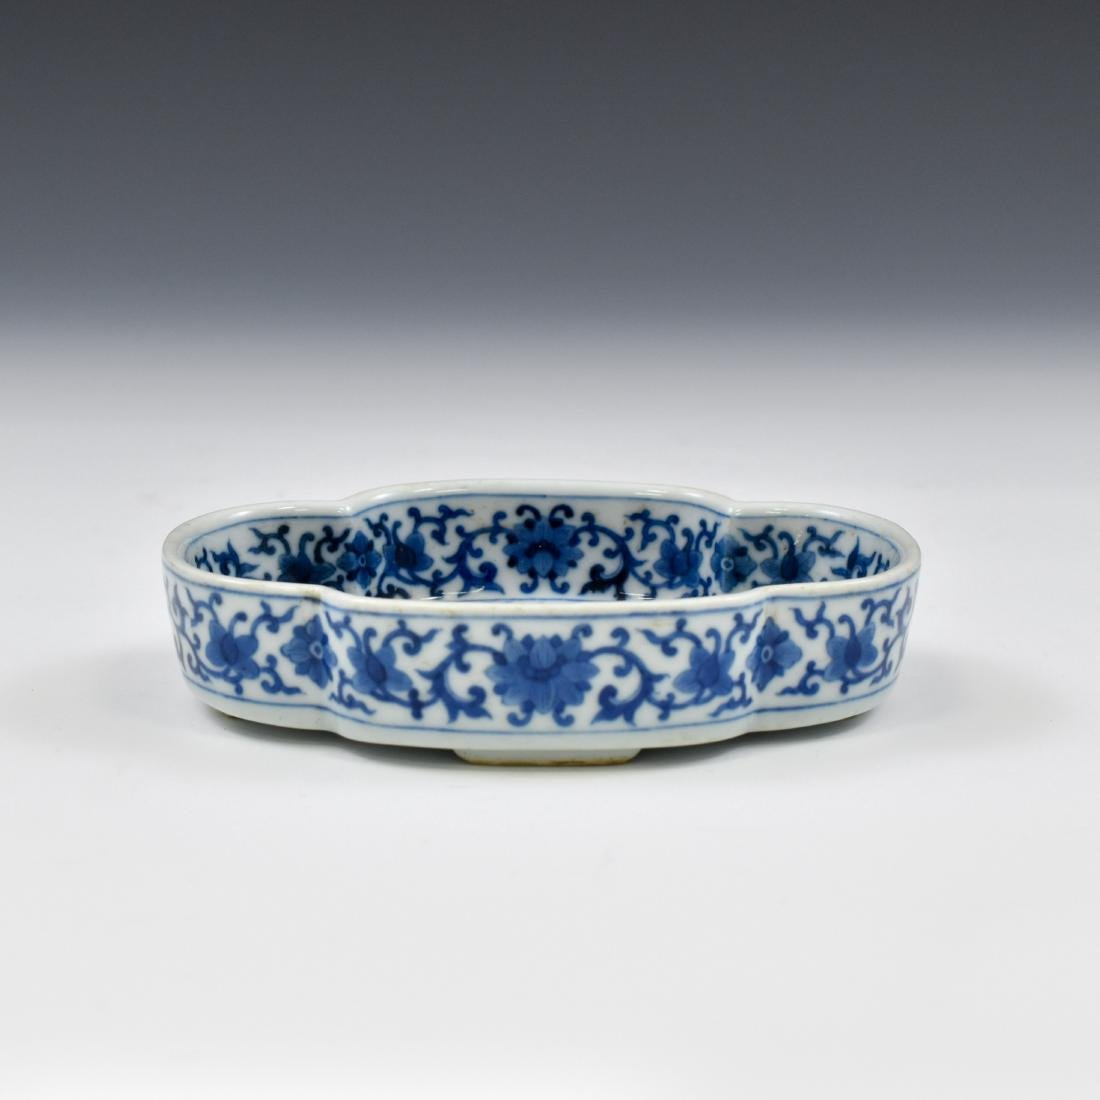 QING CHINESE NARCISSUS PORCELAIN PLATE - 3